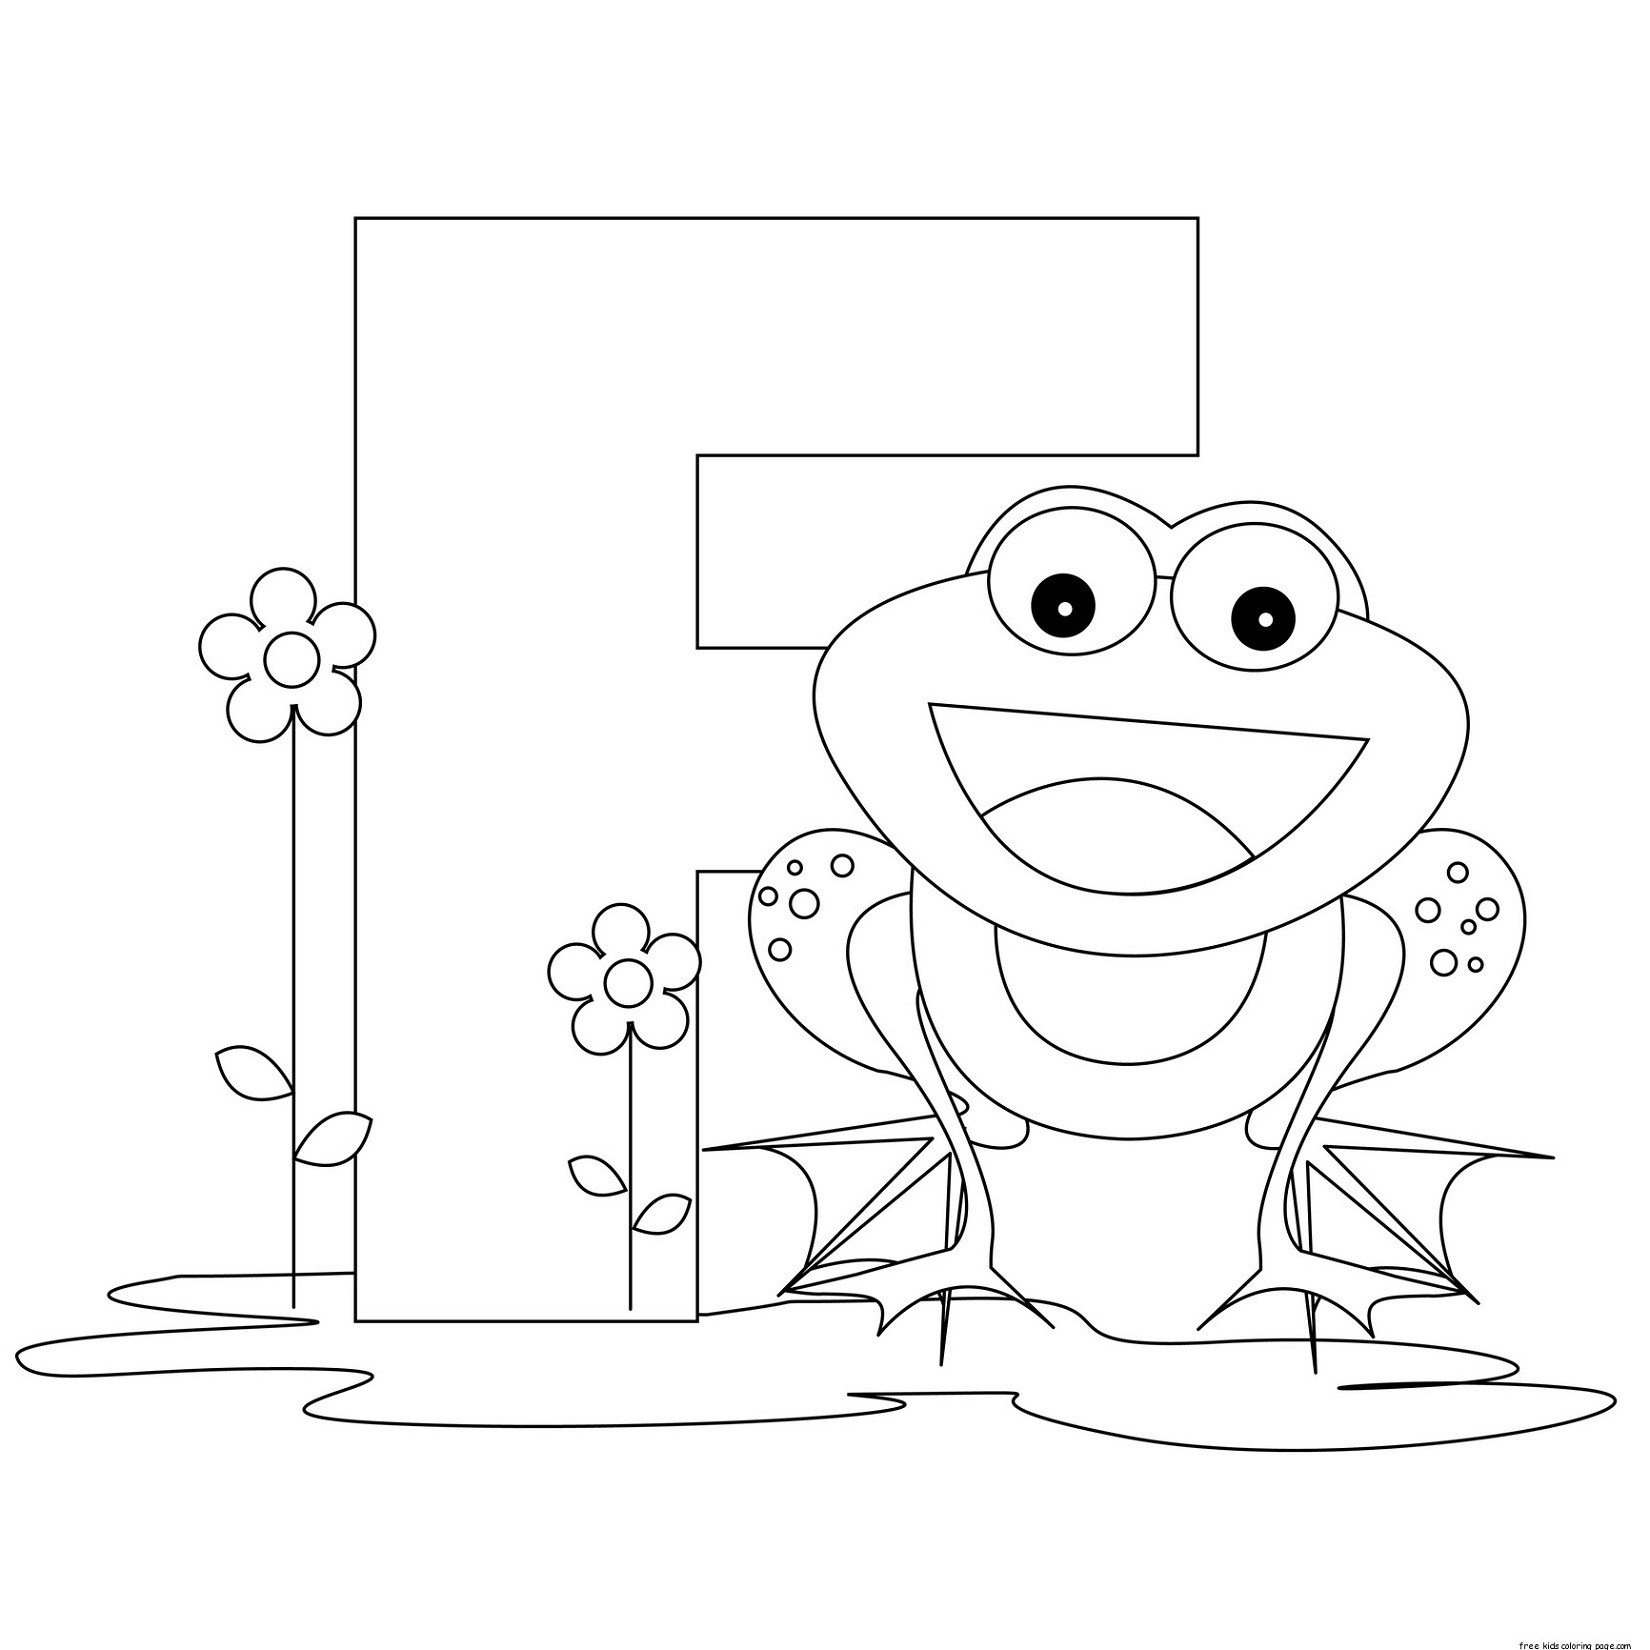 letter f coloring pages for toddlers letter f is for firefighter coloring page from letter f coloring f for toddlers letter pages